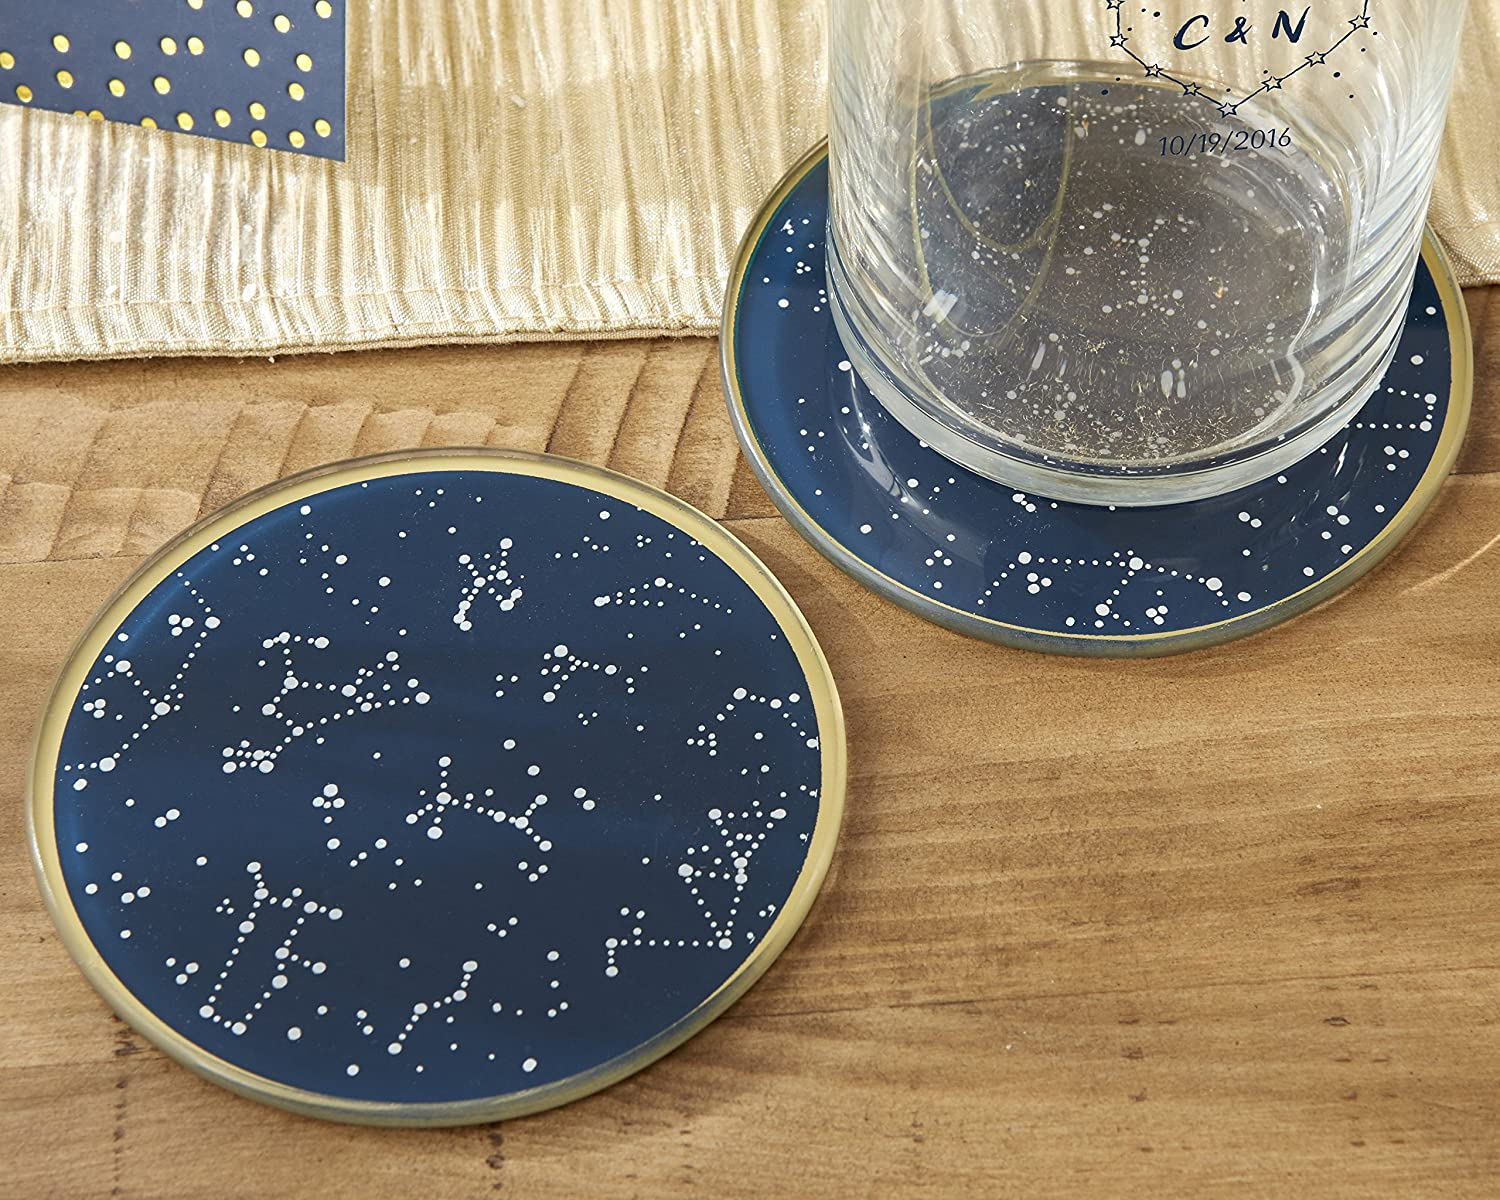 Under the Stars Glass Coaster Set, Wedding/Party Decorations, Party Favor Gift,